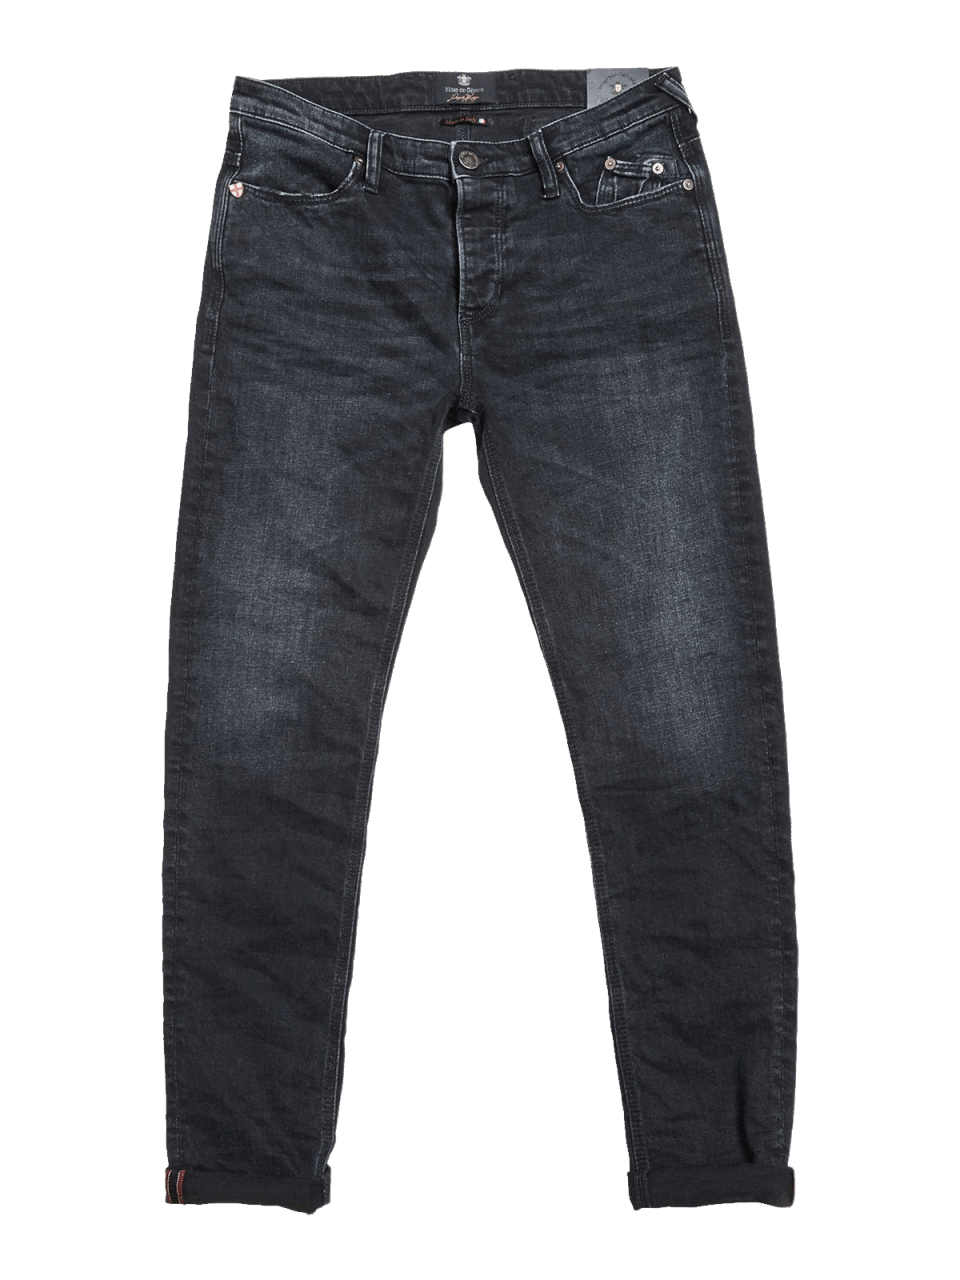 BLUE DE GENES Repi BB New Jeans